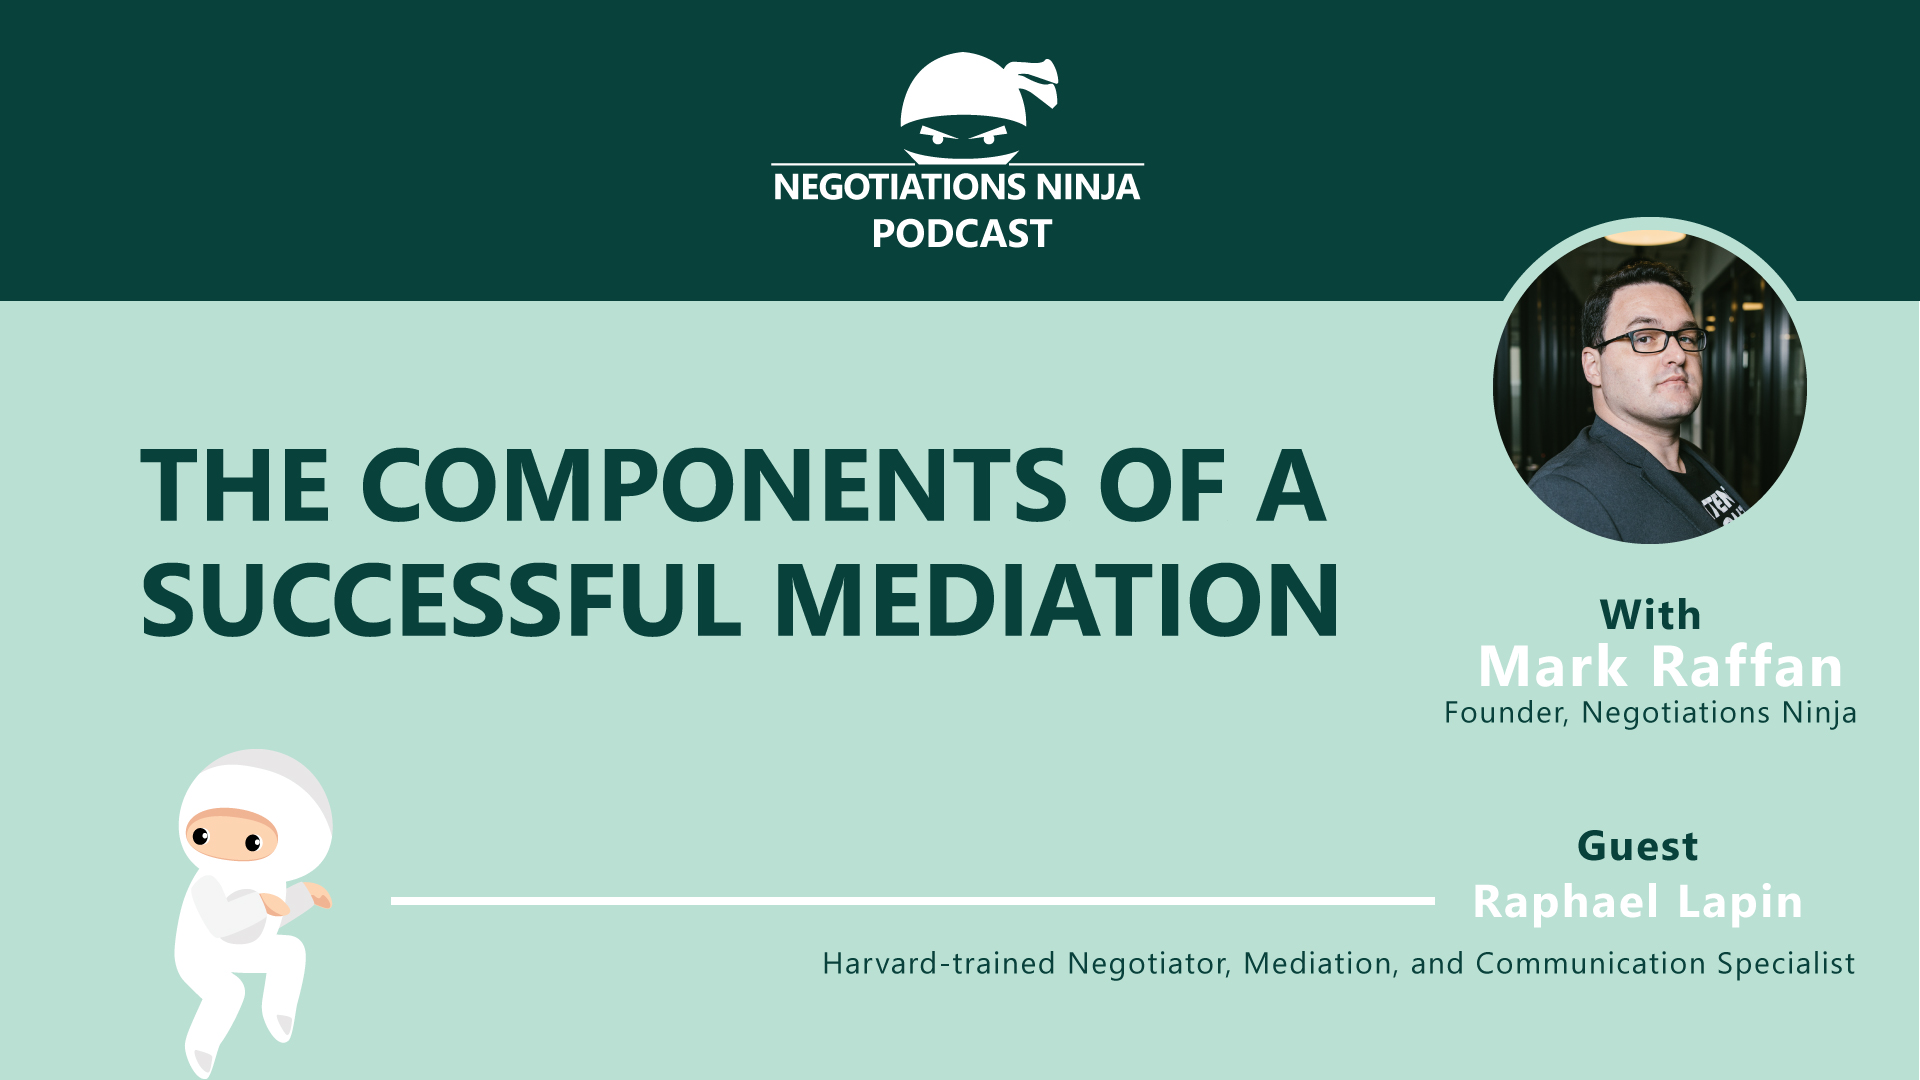 The components of a successful mediation with Raphael Lapin